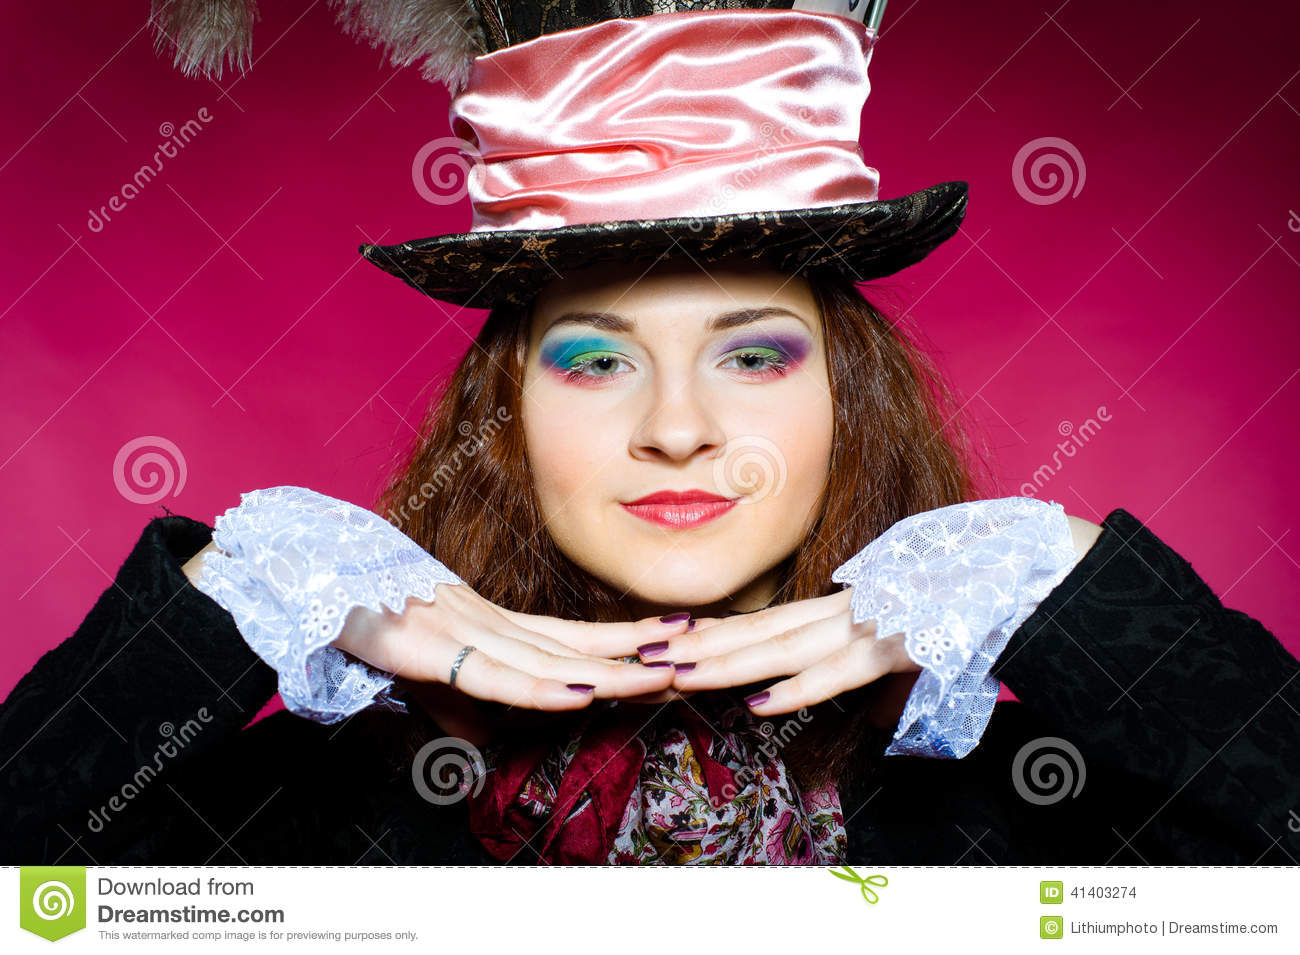 Portrait of young woman in the similitude of the Hatter